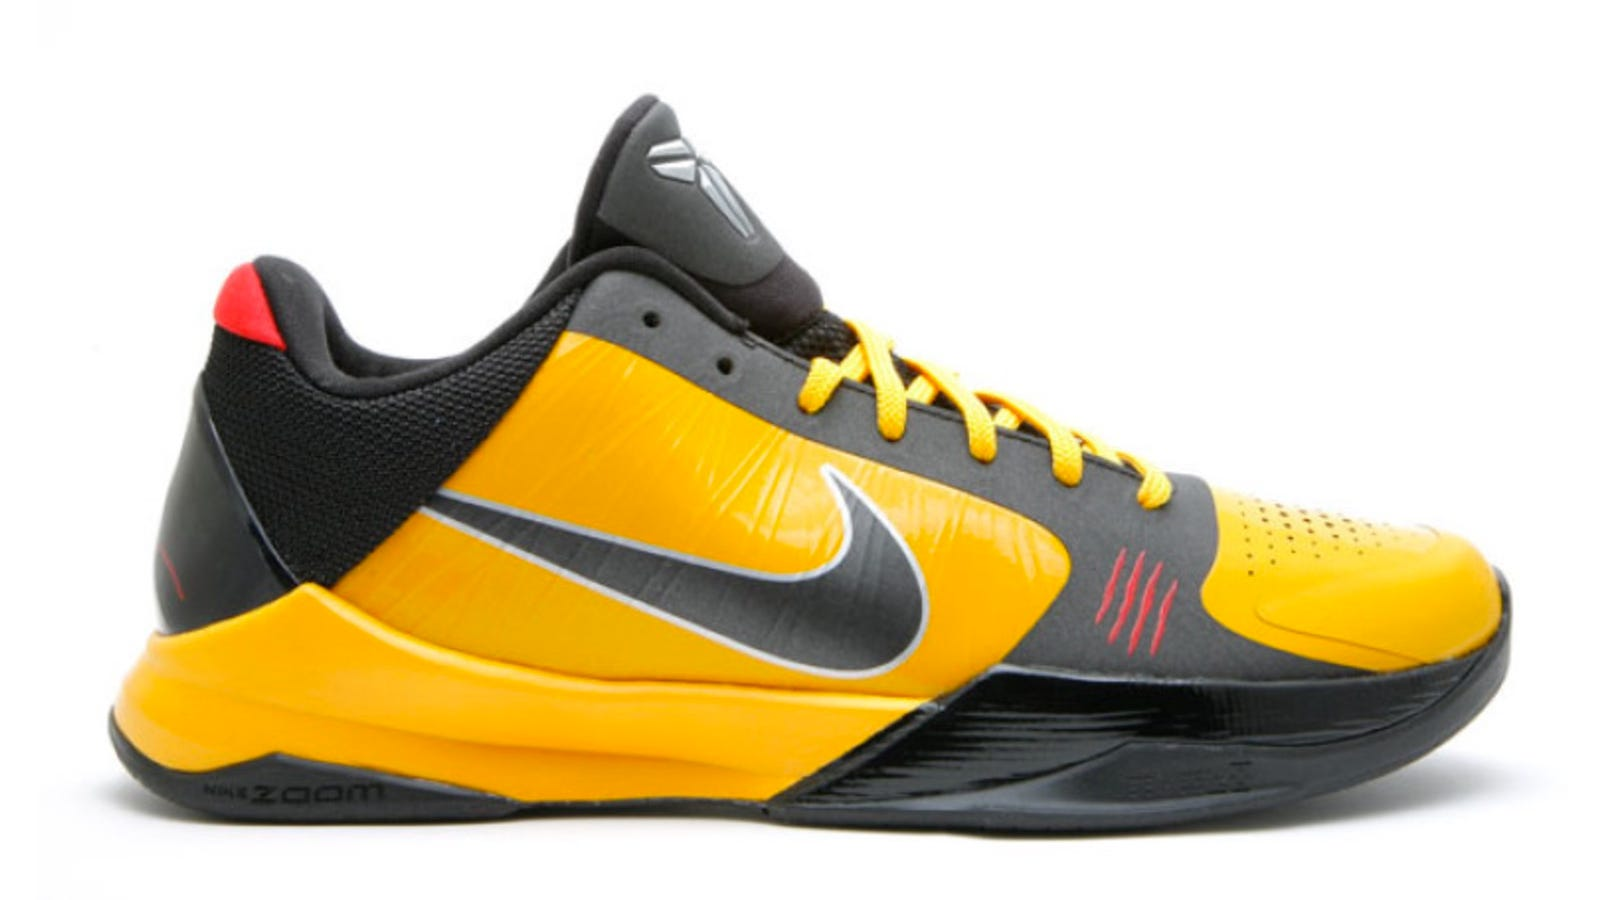 9015b4831aa ... get kobe bryant and bruce lee inspired kyrie irvings latest special  edition shoe e90f7 e6709